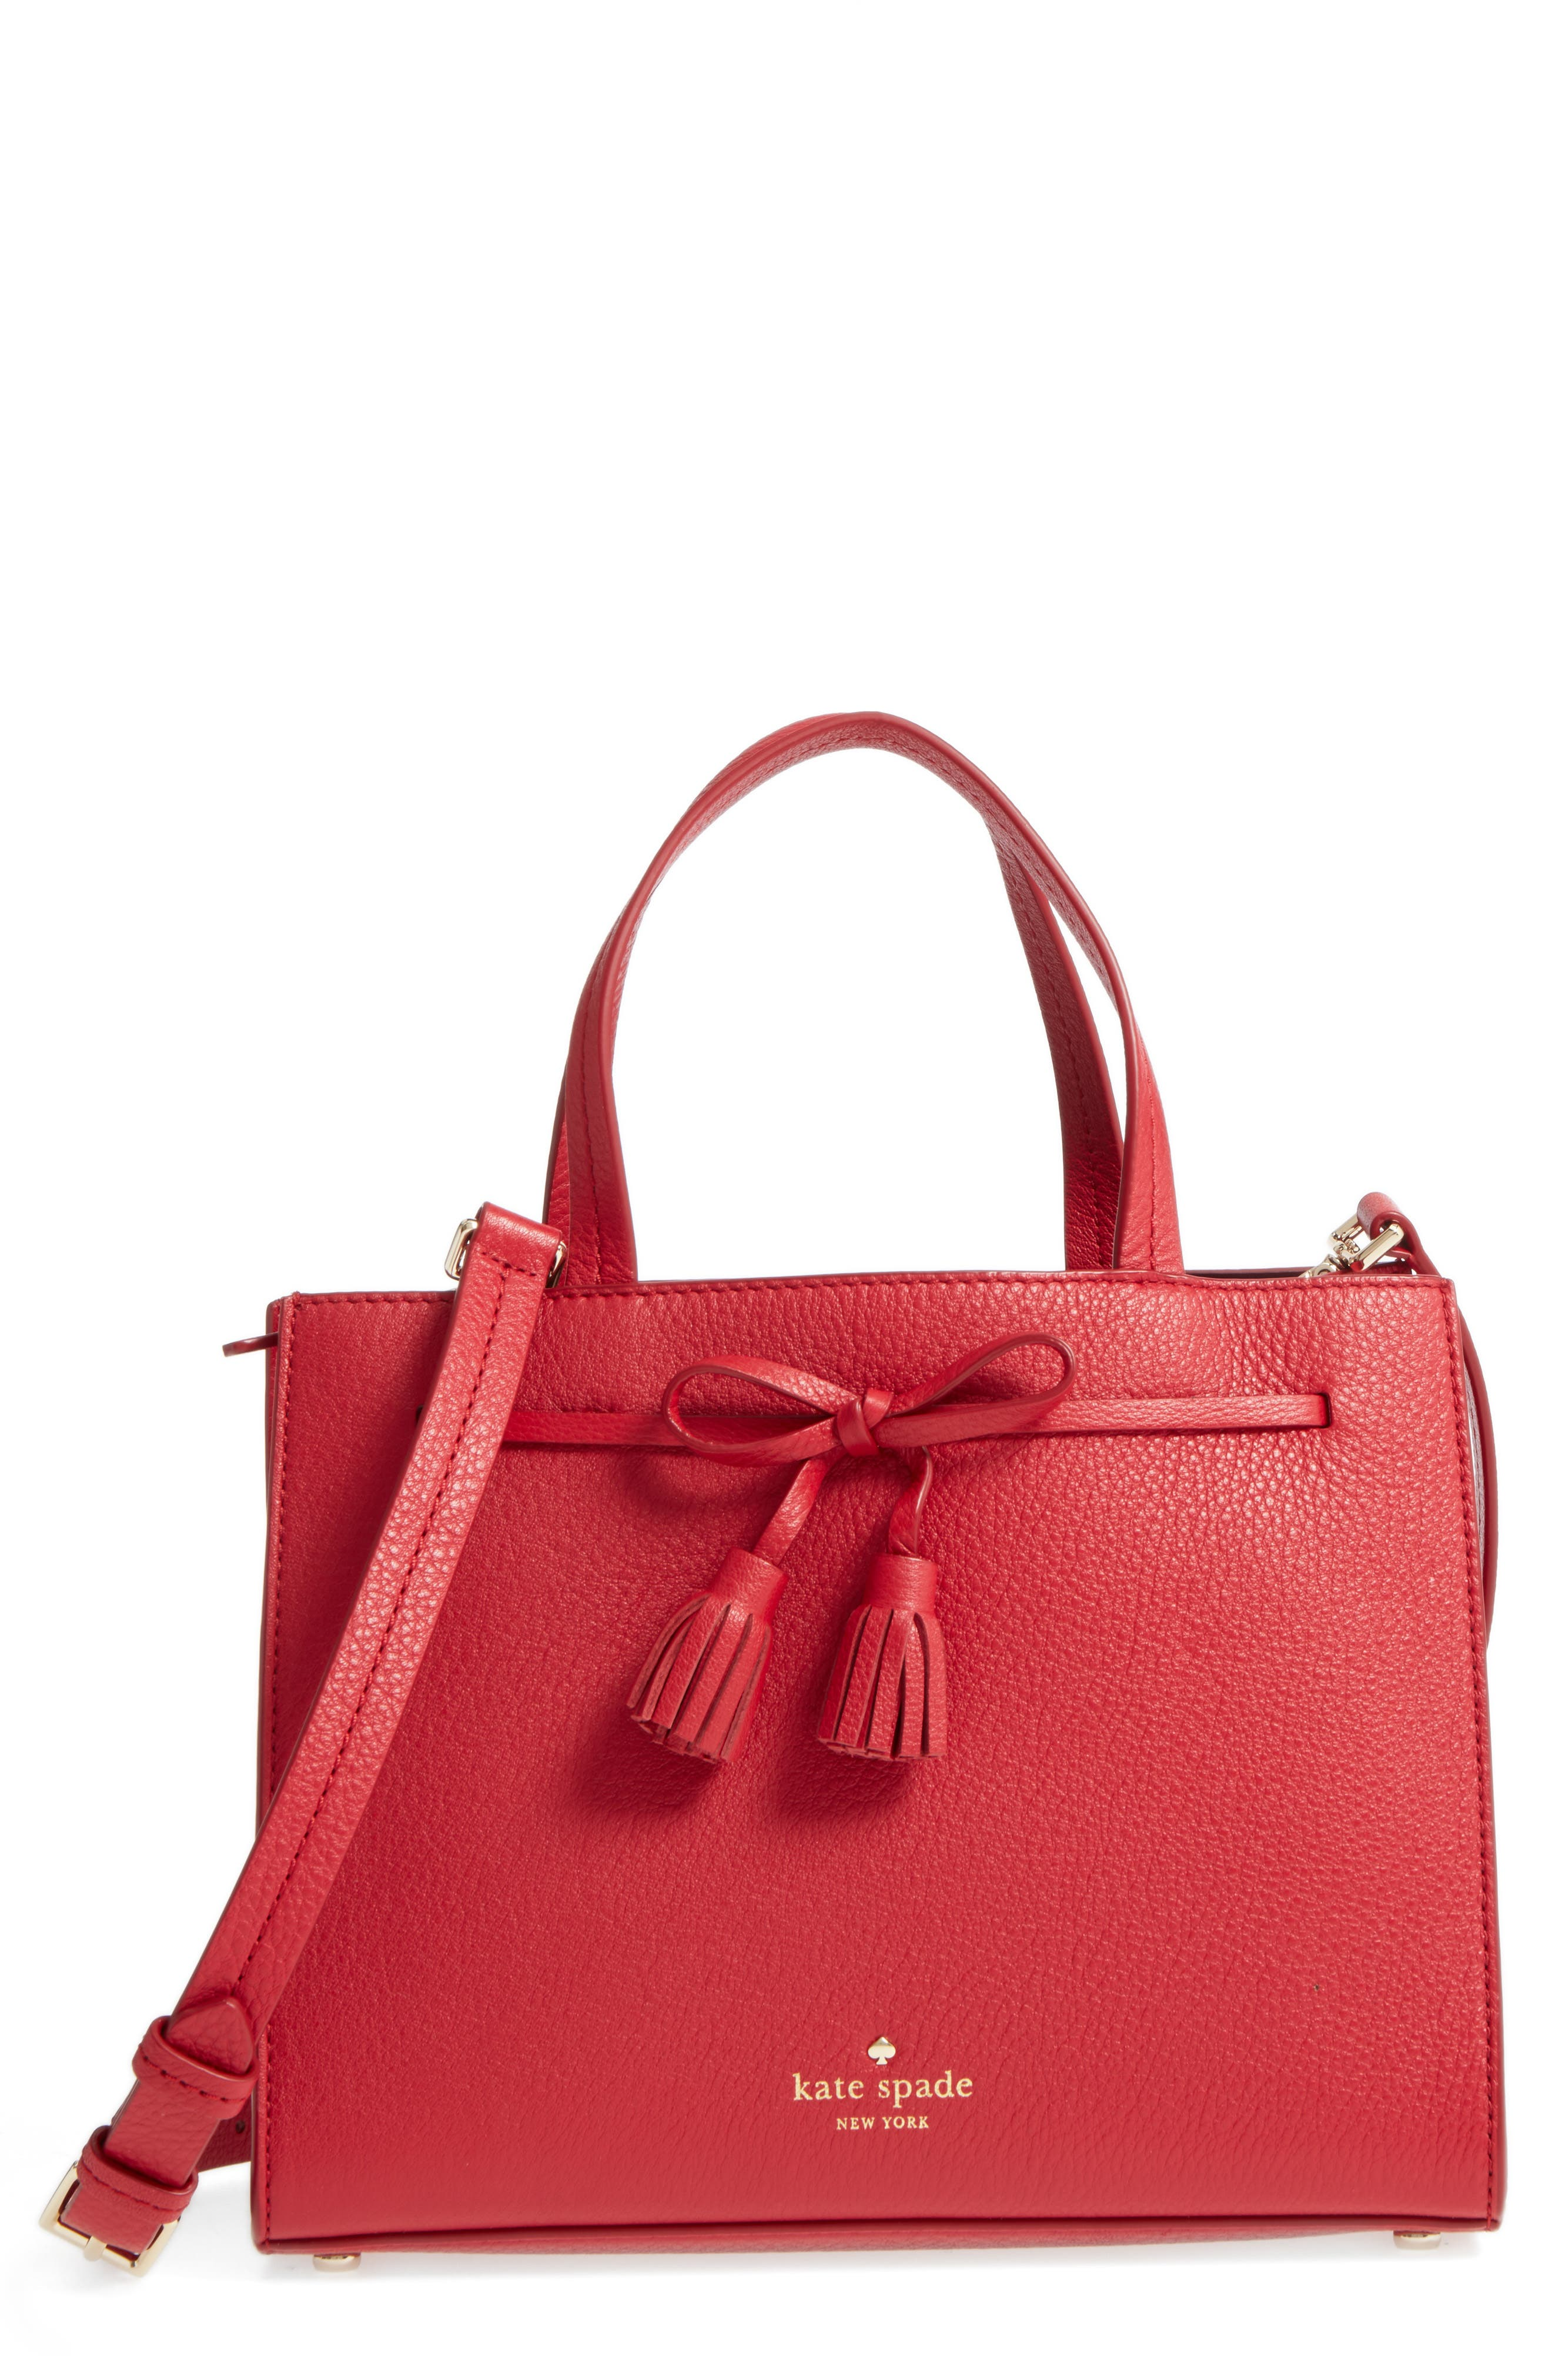 Alternate Image 1 Selected - kate spade new york hayes street small isobel leather satchel